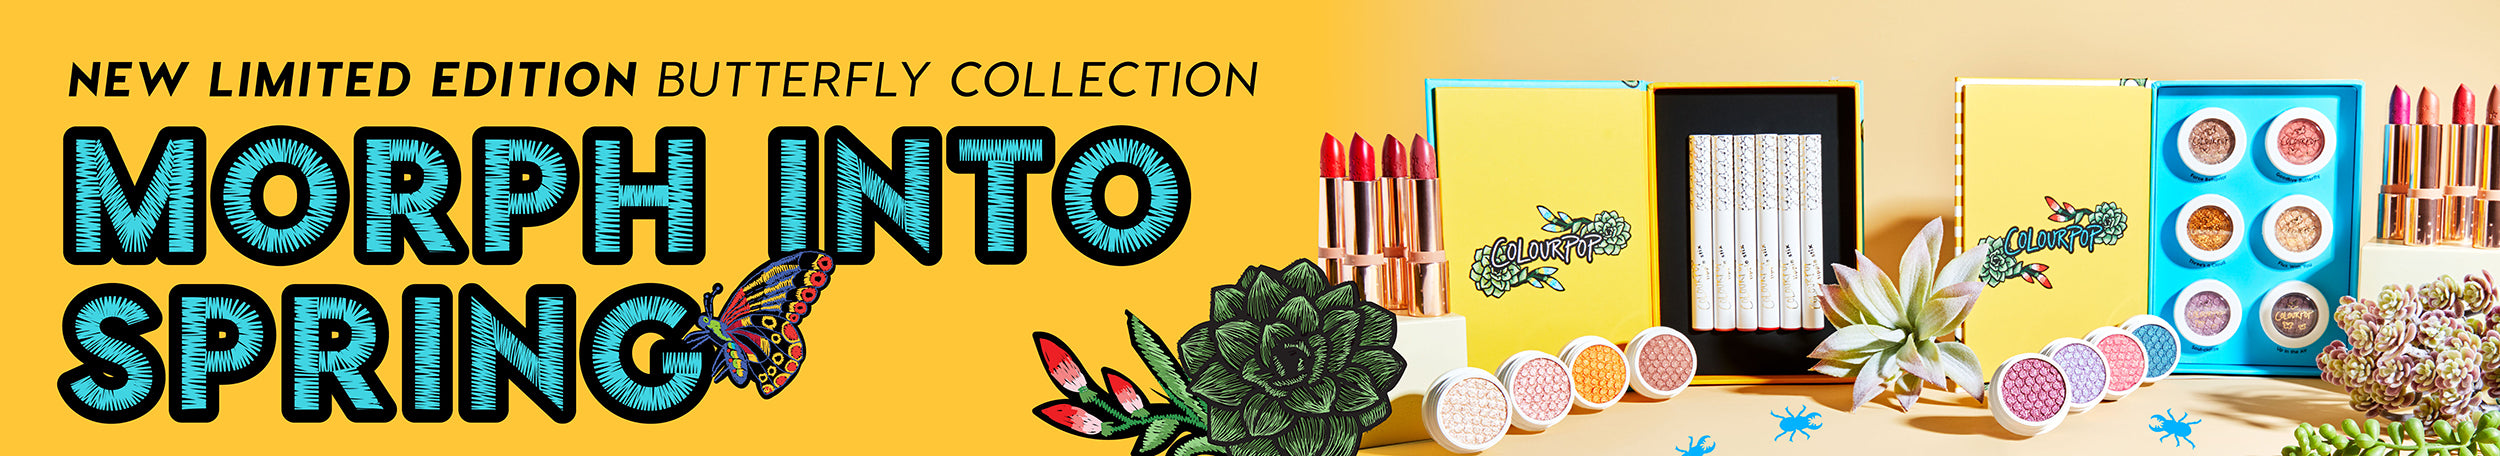 ColourPop Cosmetics The Butterfly Collection